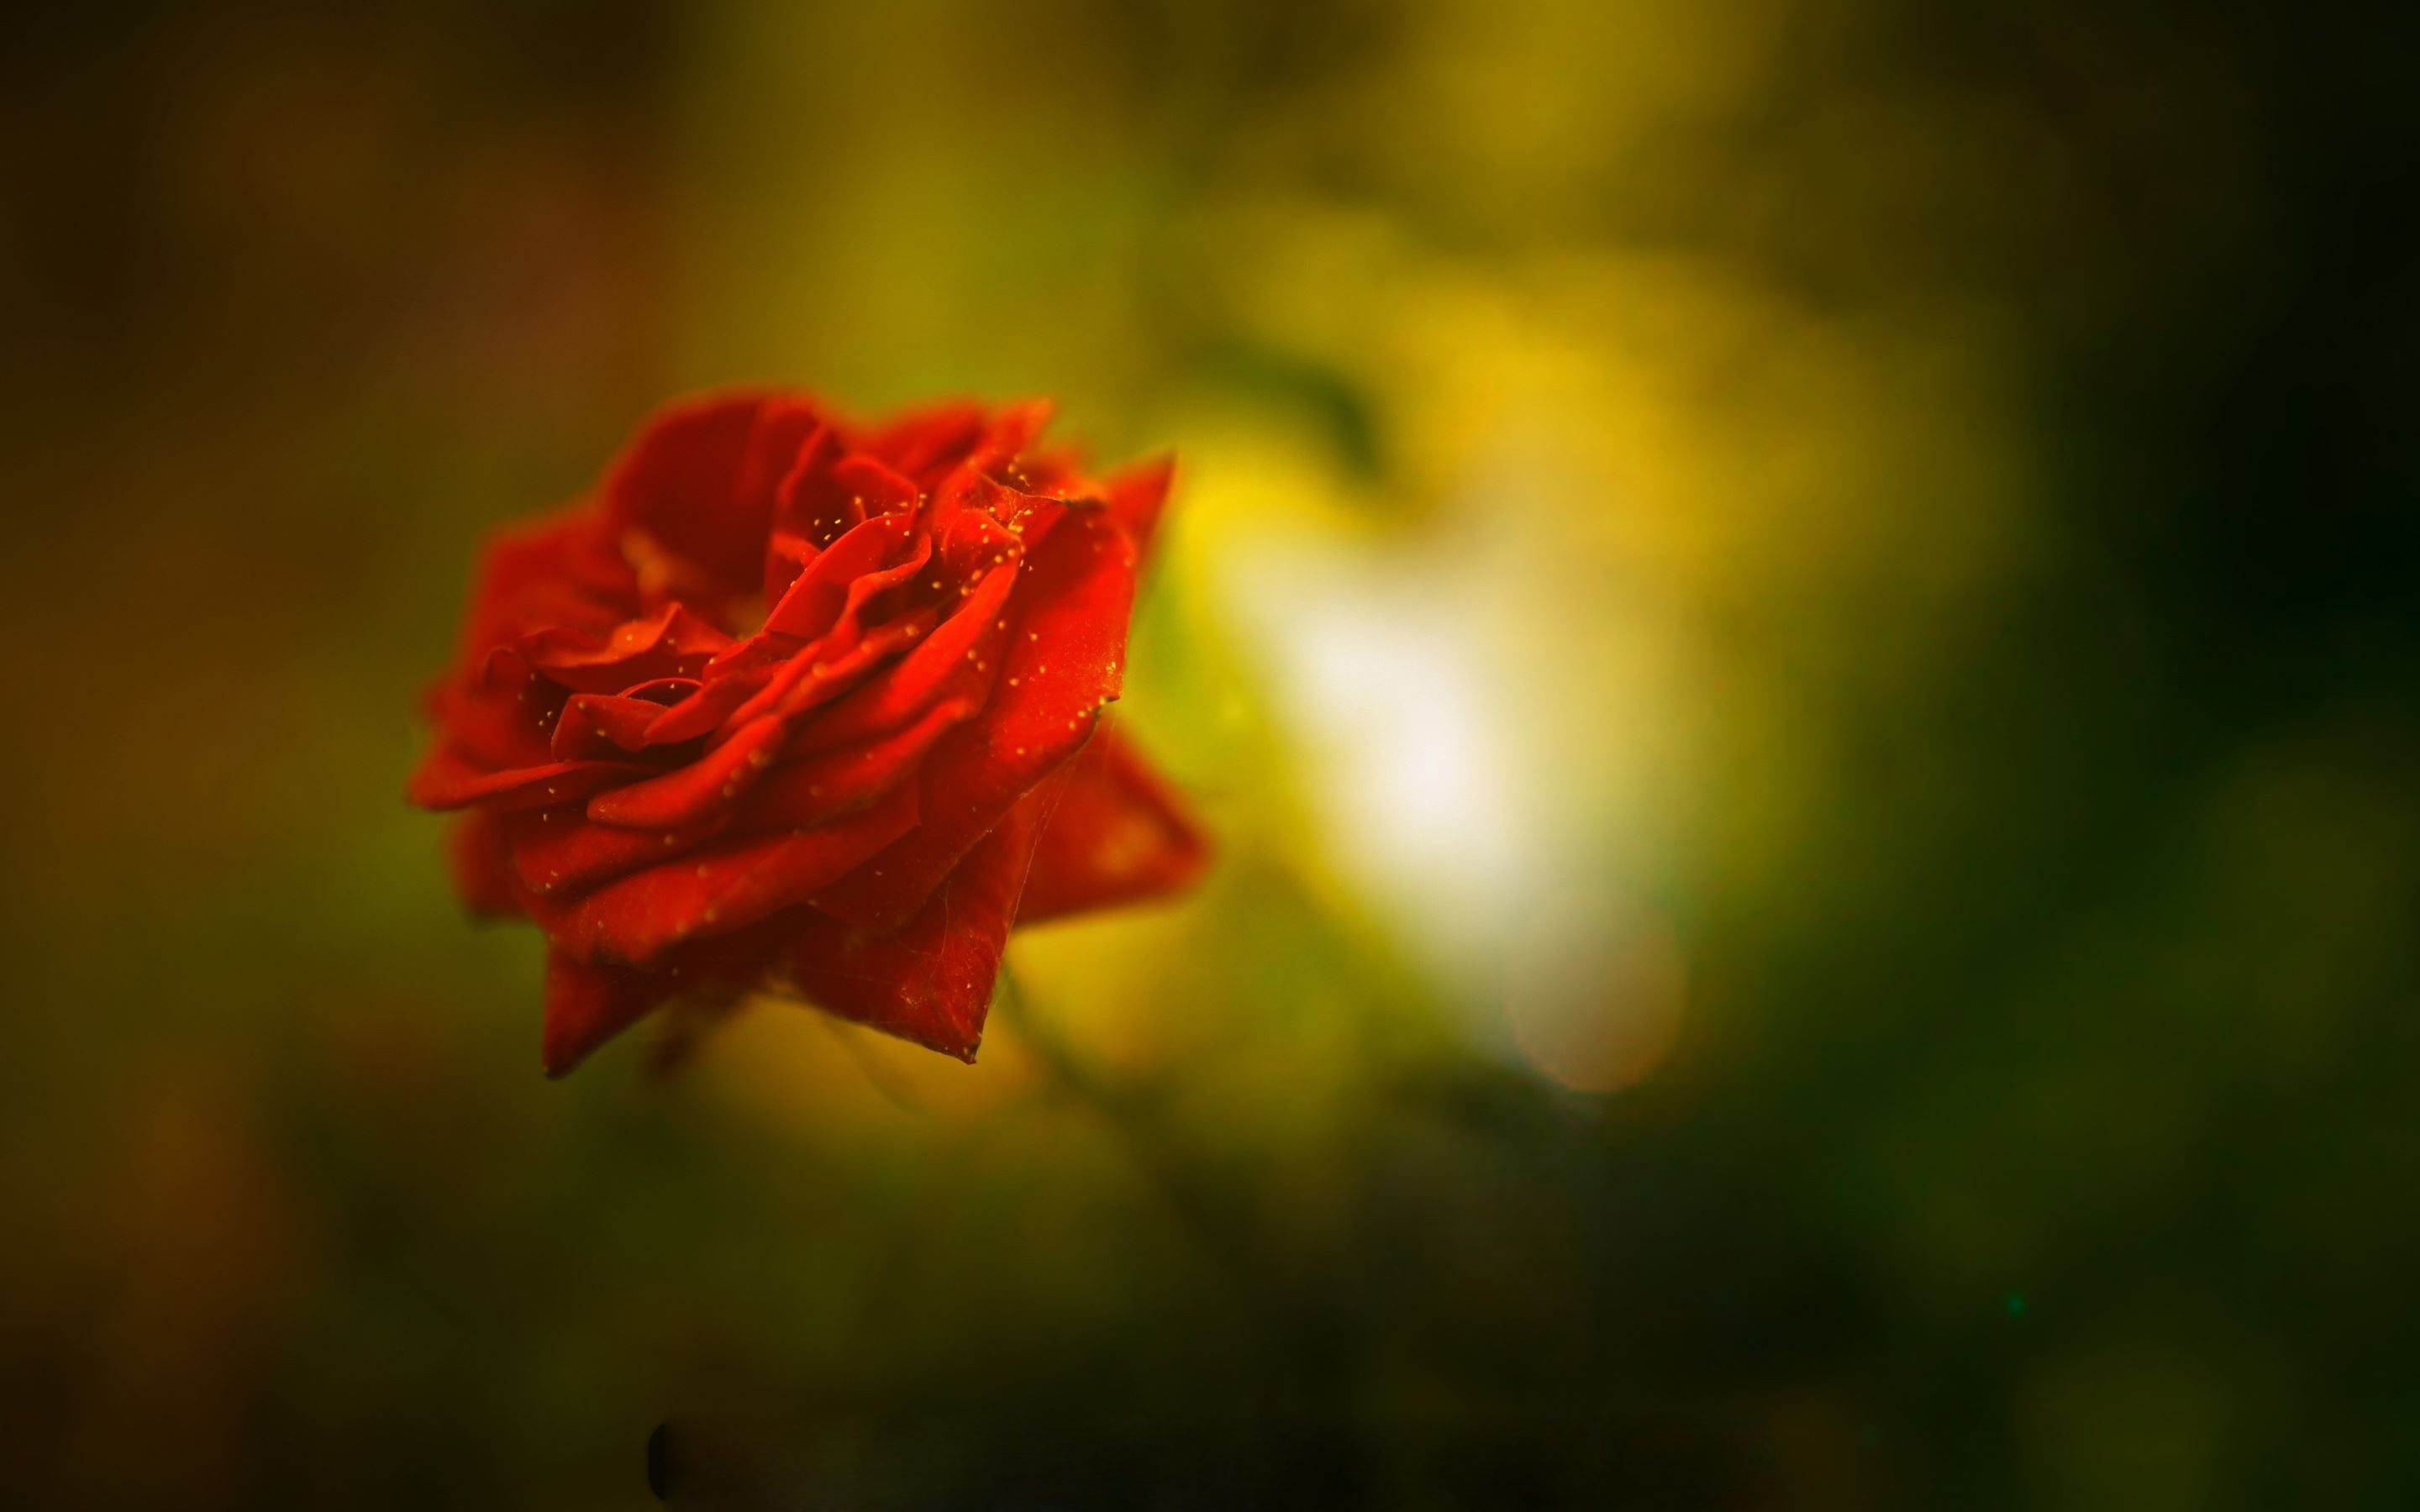 Beautiful rose images and wallpapers 15